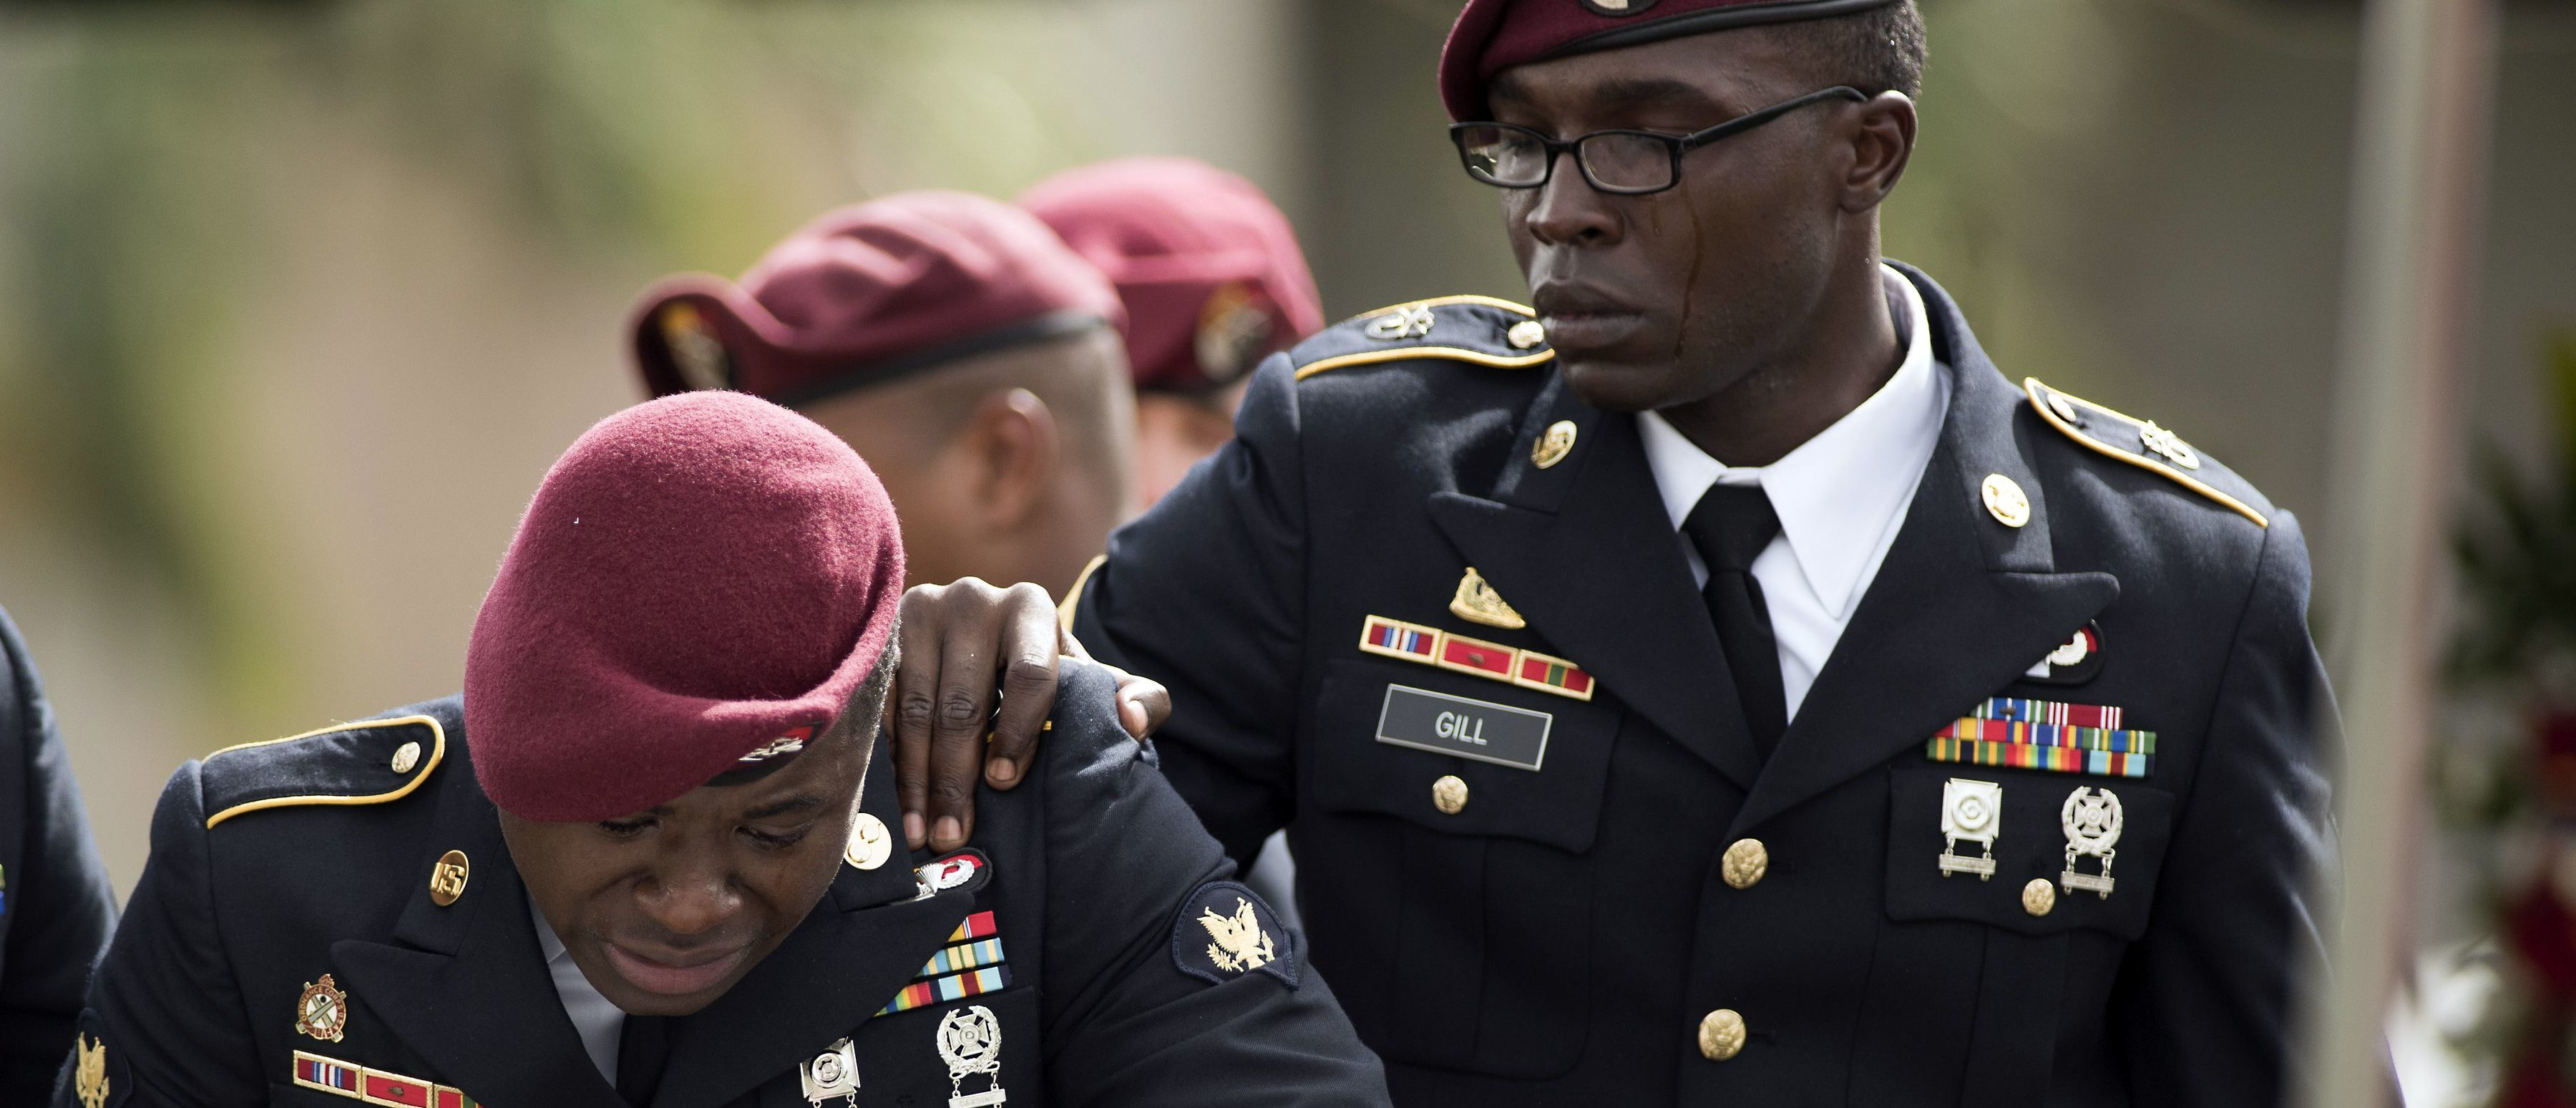 Members of the 3rd Special Forces Group, 2nd battalion cry at the tomb of US Army Sgt. La David Johnson at his burial service in the Memorial Gardens East cemetery on October 21, 2017 in Hollywood, Florida. Sgt. Johnson and three other US soldiers were killed in an ambush in Niger on October 4. GASTON DE CARDENAS/AFP/Getty Images